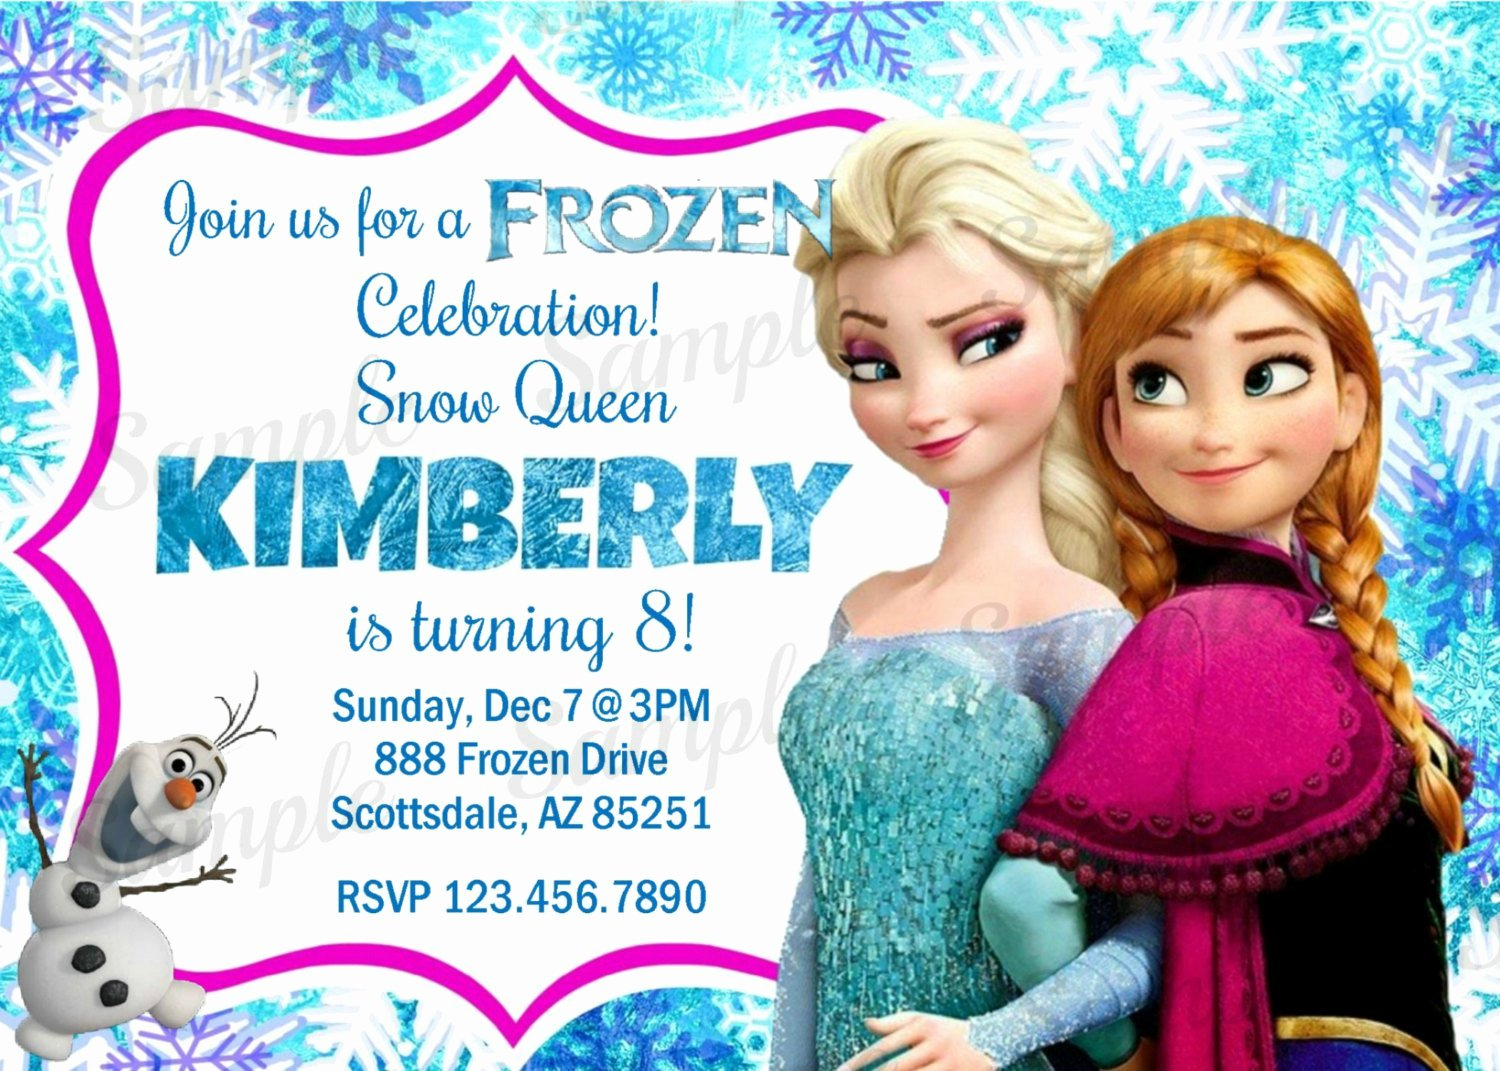 Personalized Frozen Birthday Invitations Unique Personalized Frozen Birthday Invitations